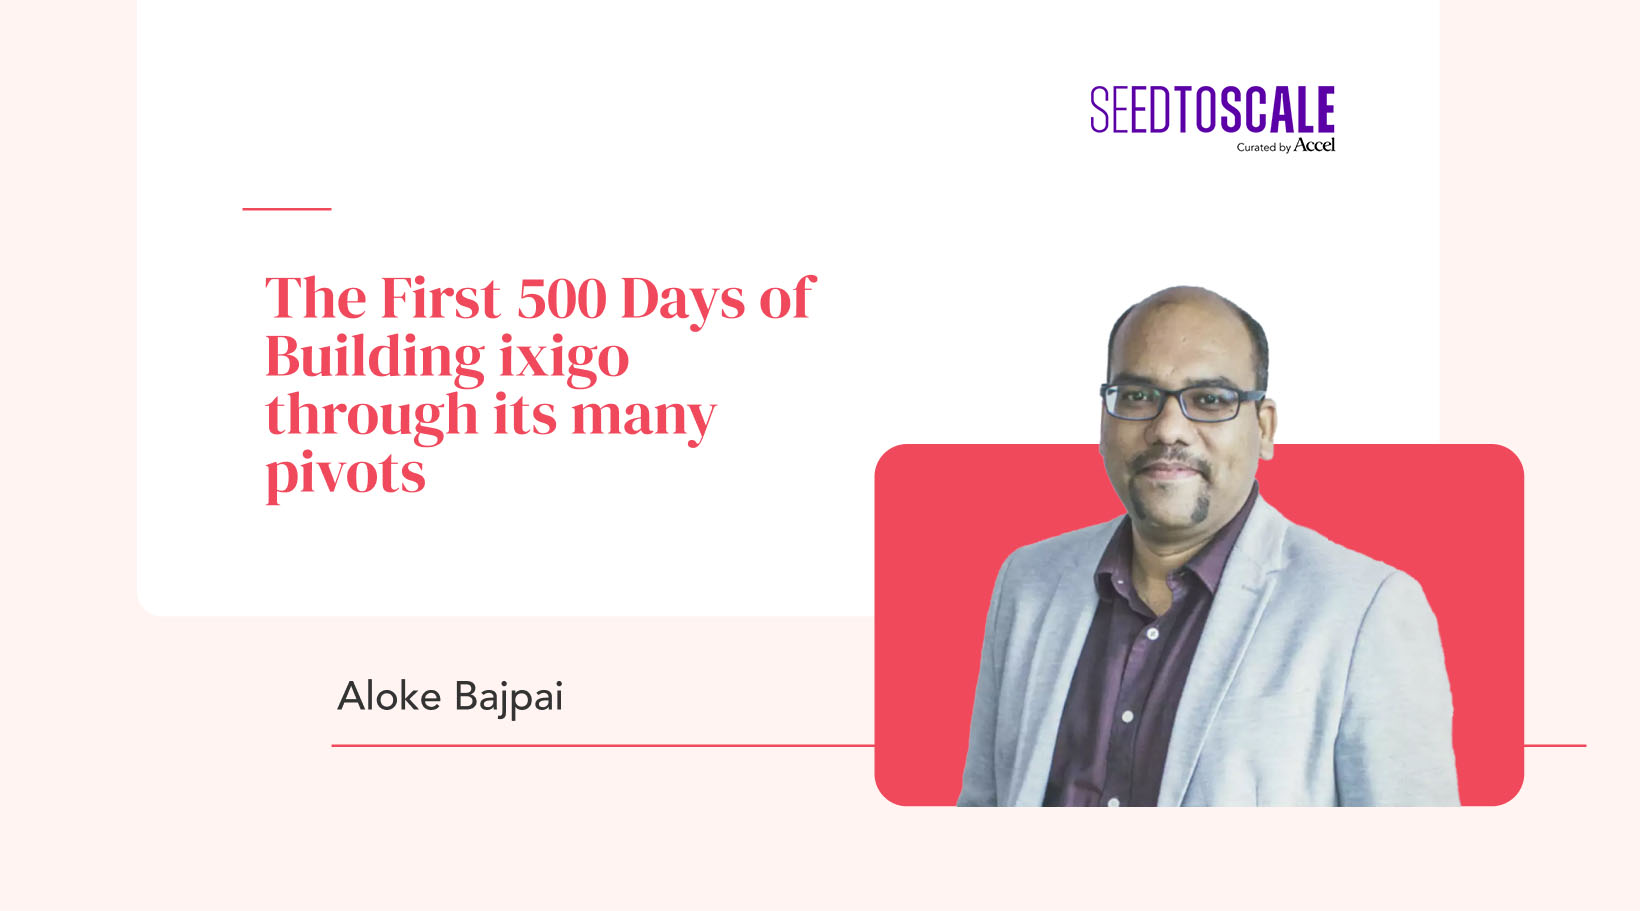 The First 500 Days of Building ixigo through its many pivots